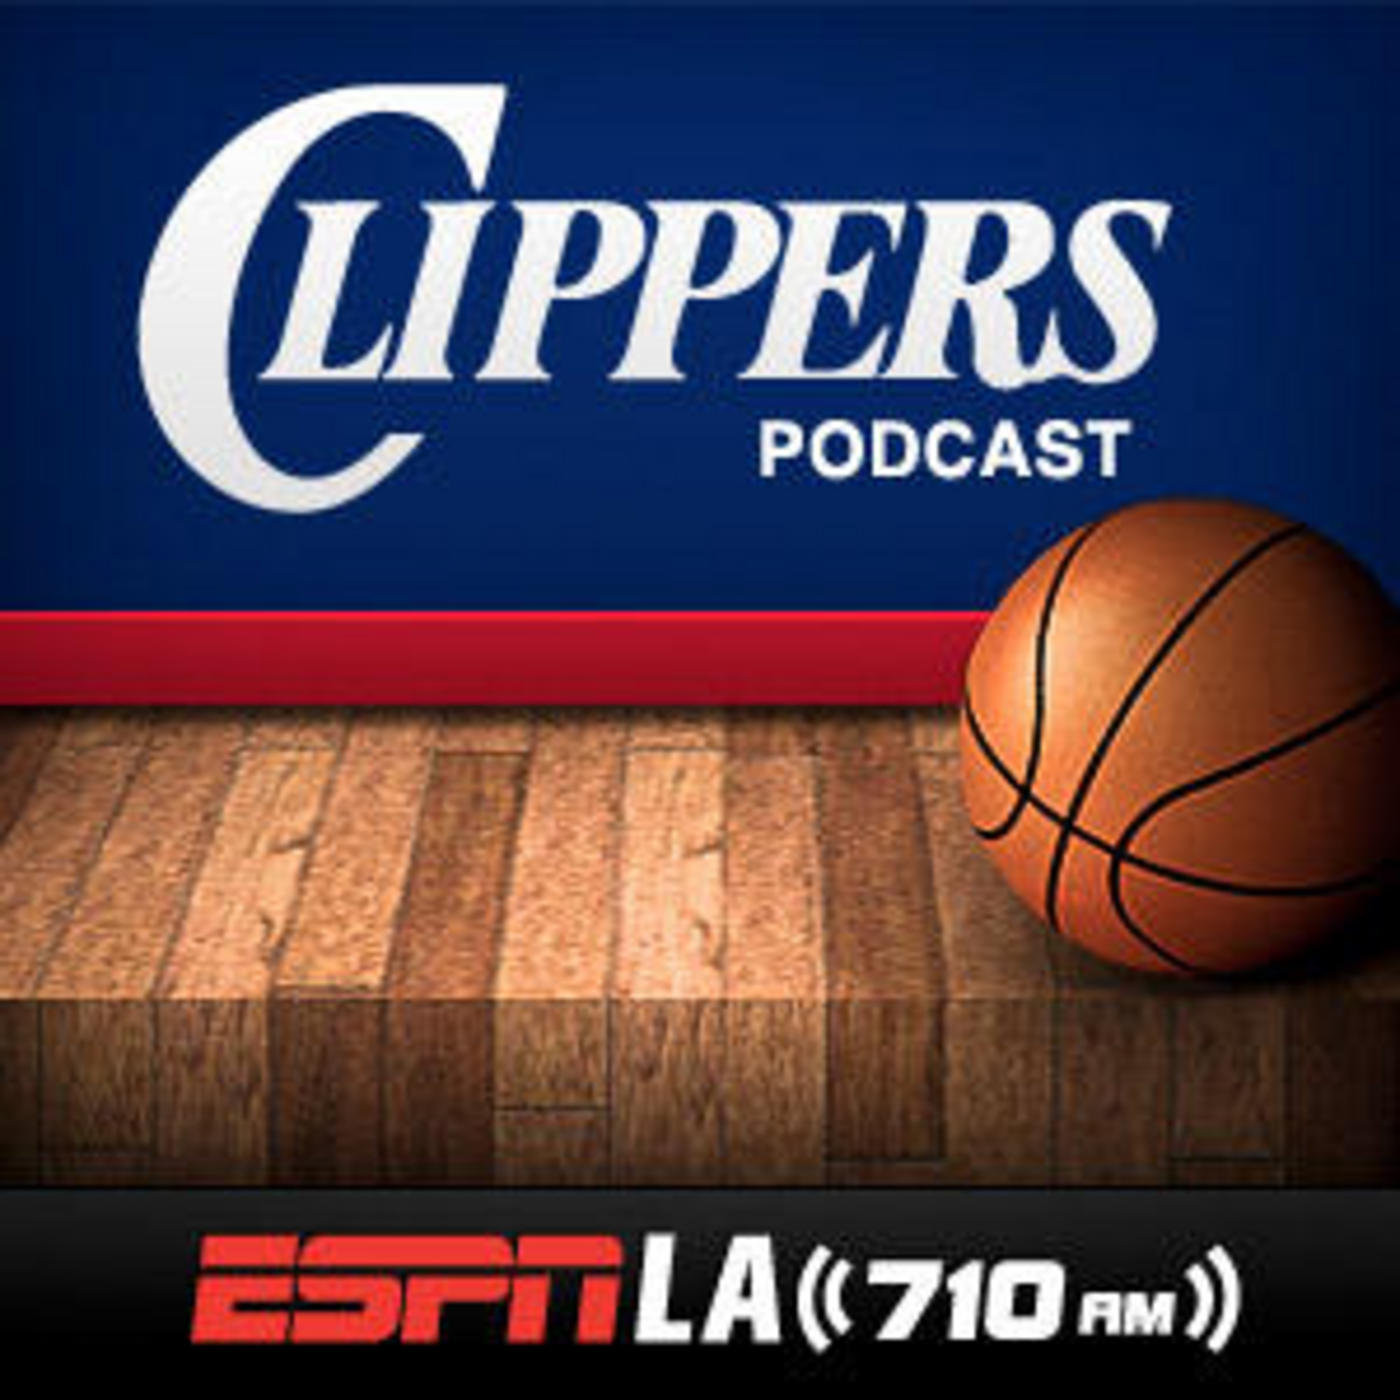 Clippers Podcast: 8/5/13